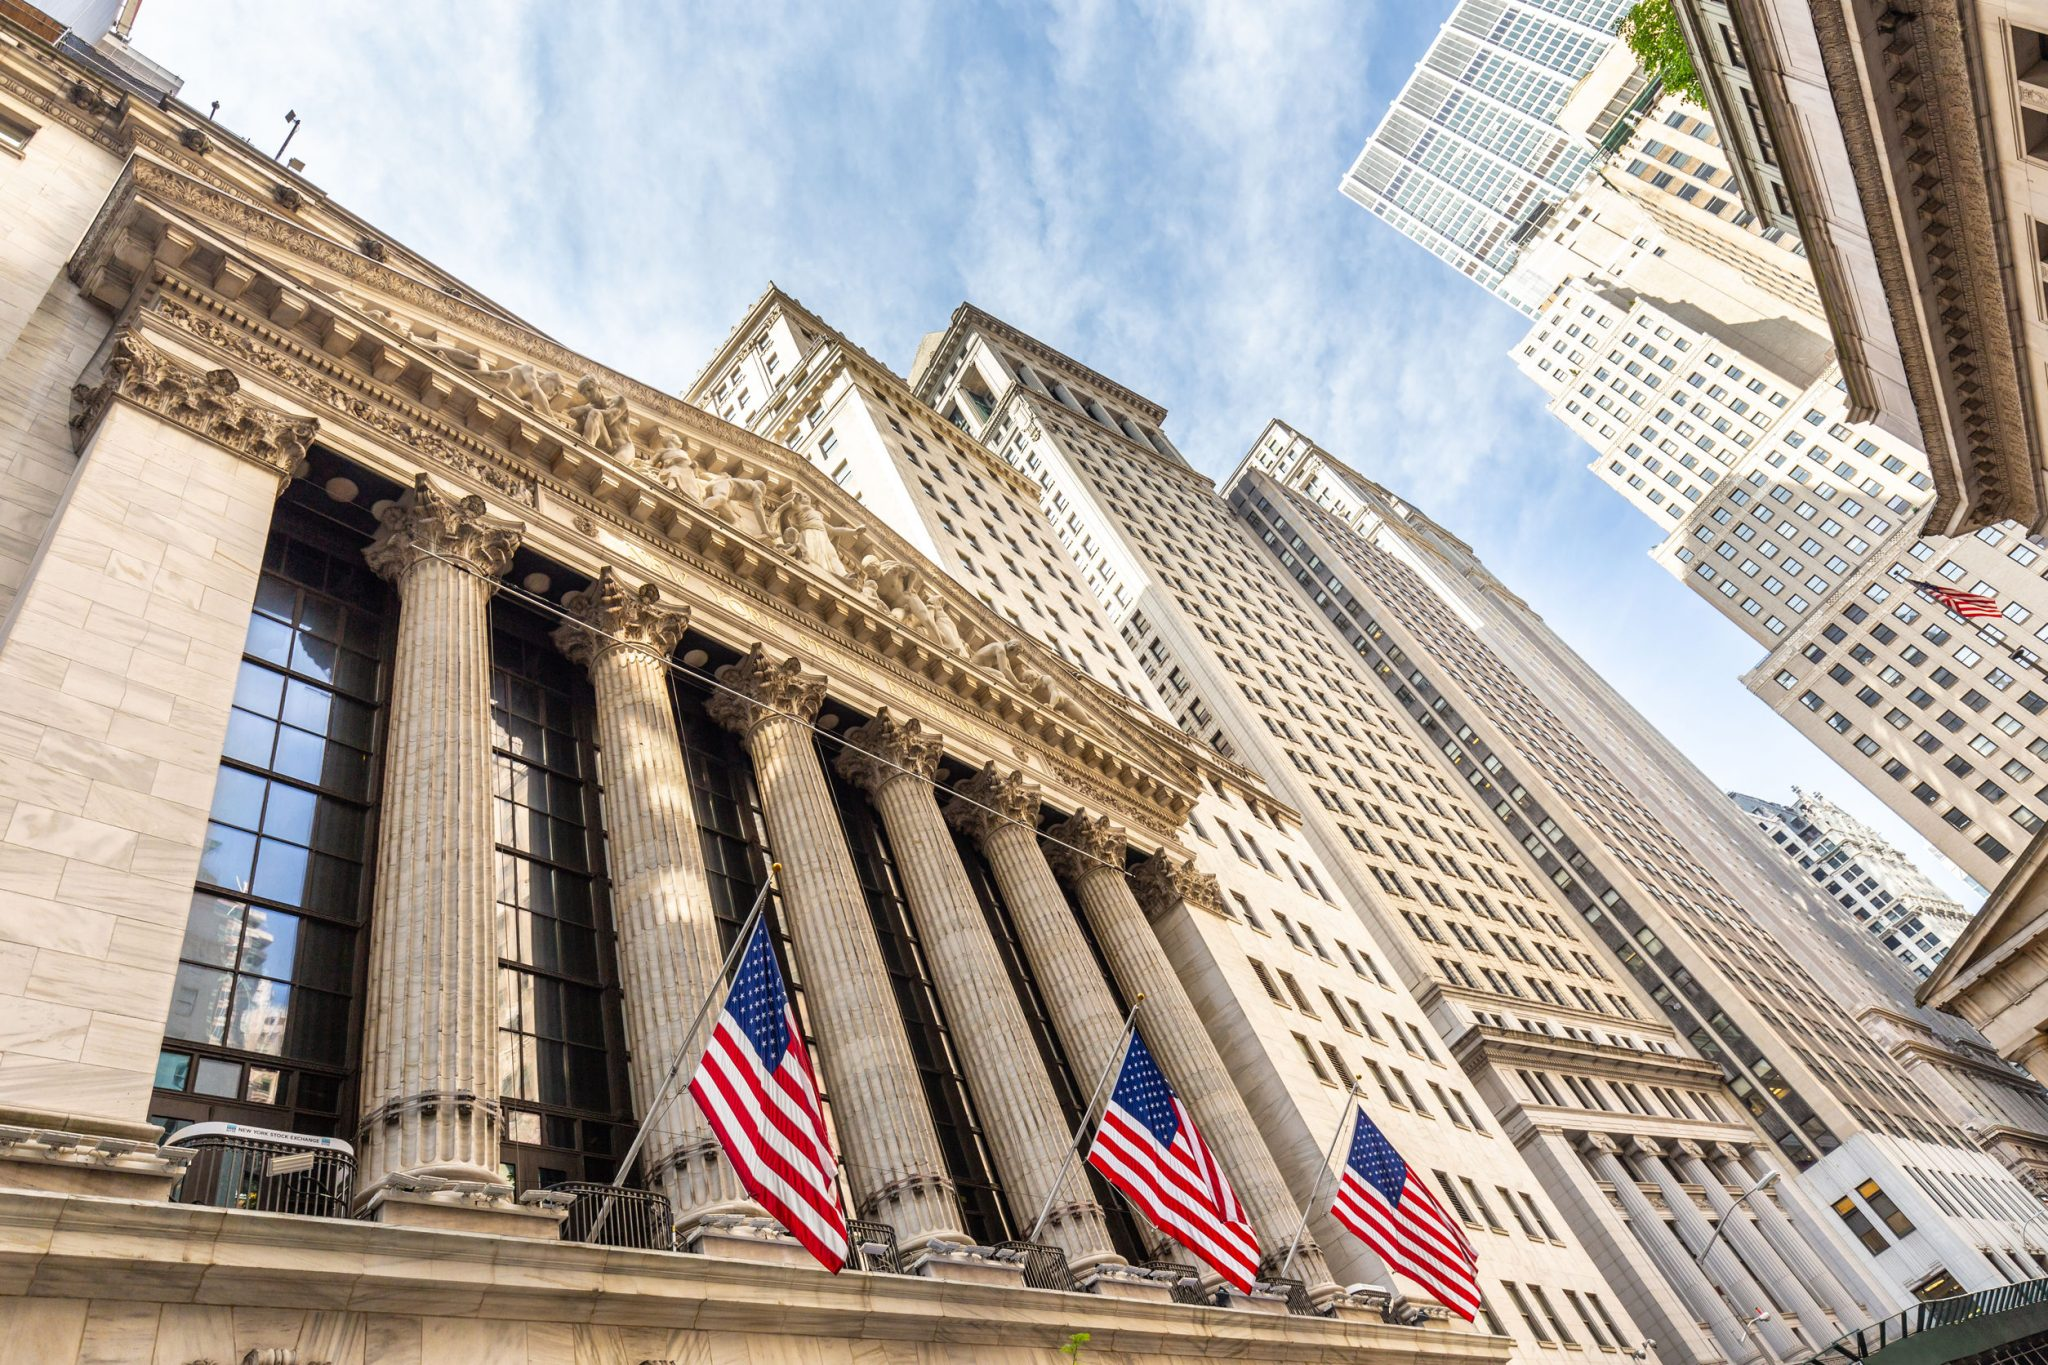 stock exchange building with American flags out front